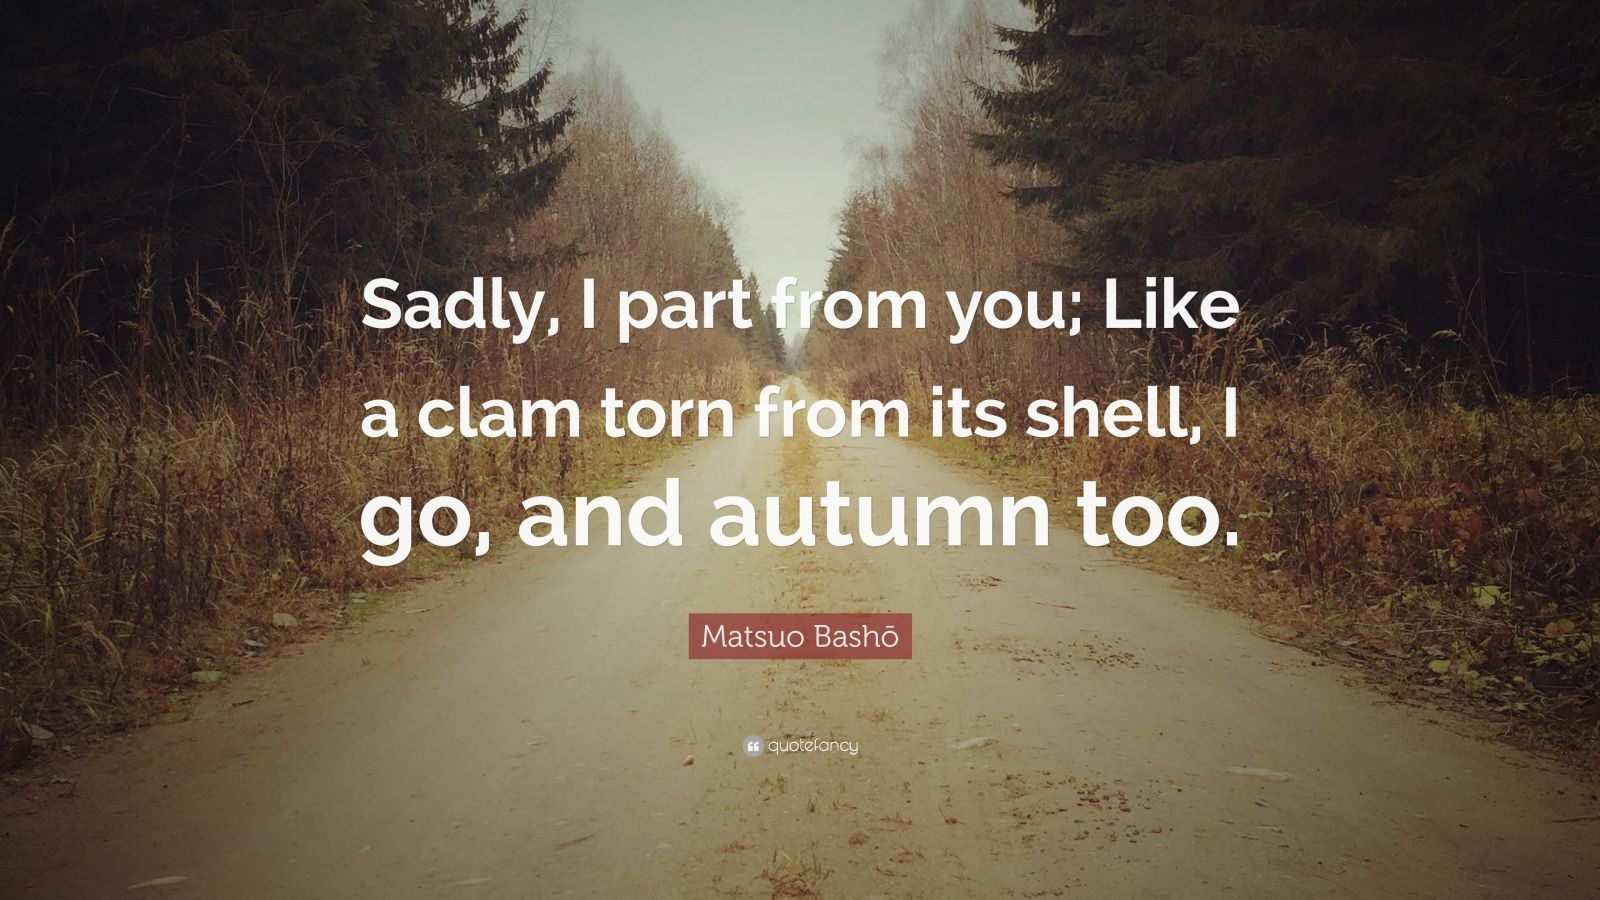 matsuo bash quotes quotefancy matsuo bash333 quote sadly i part from you like a clam torn